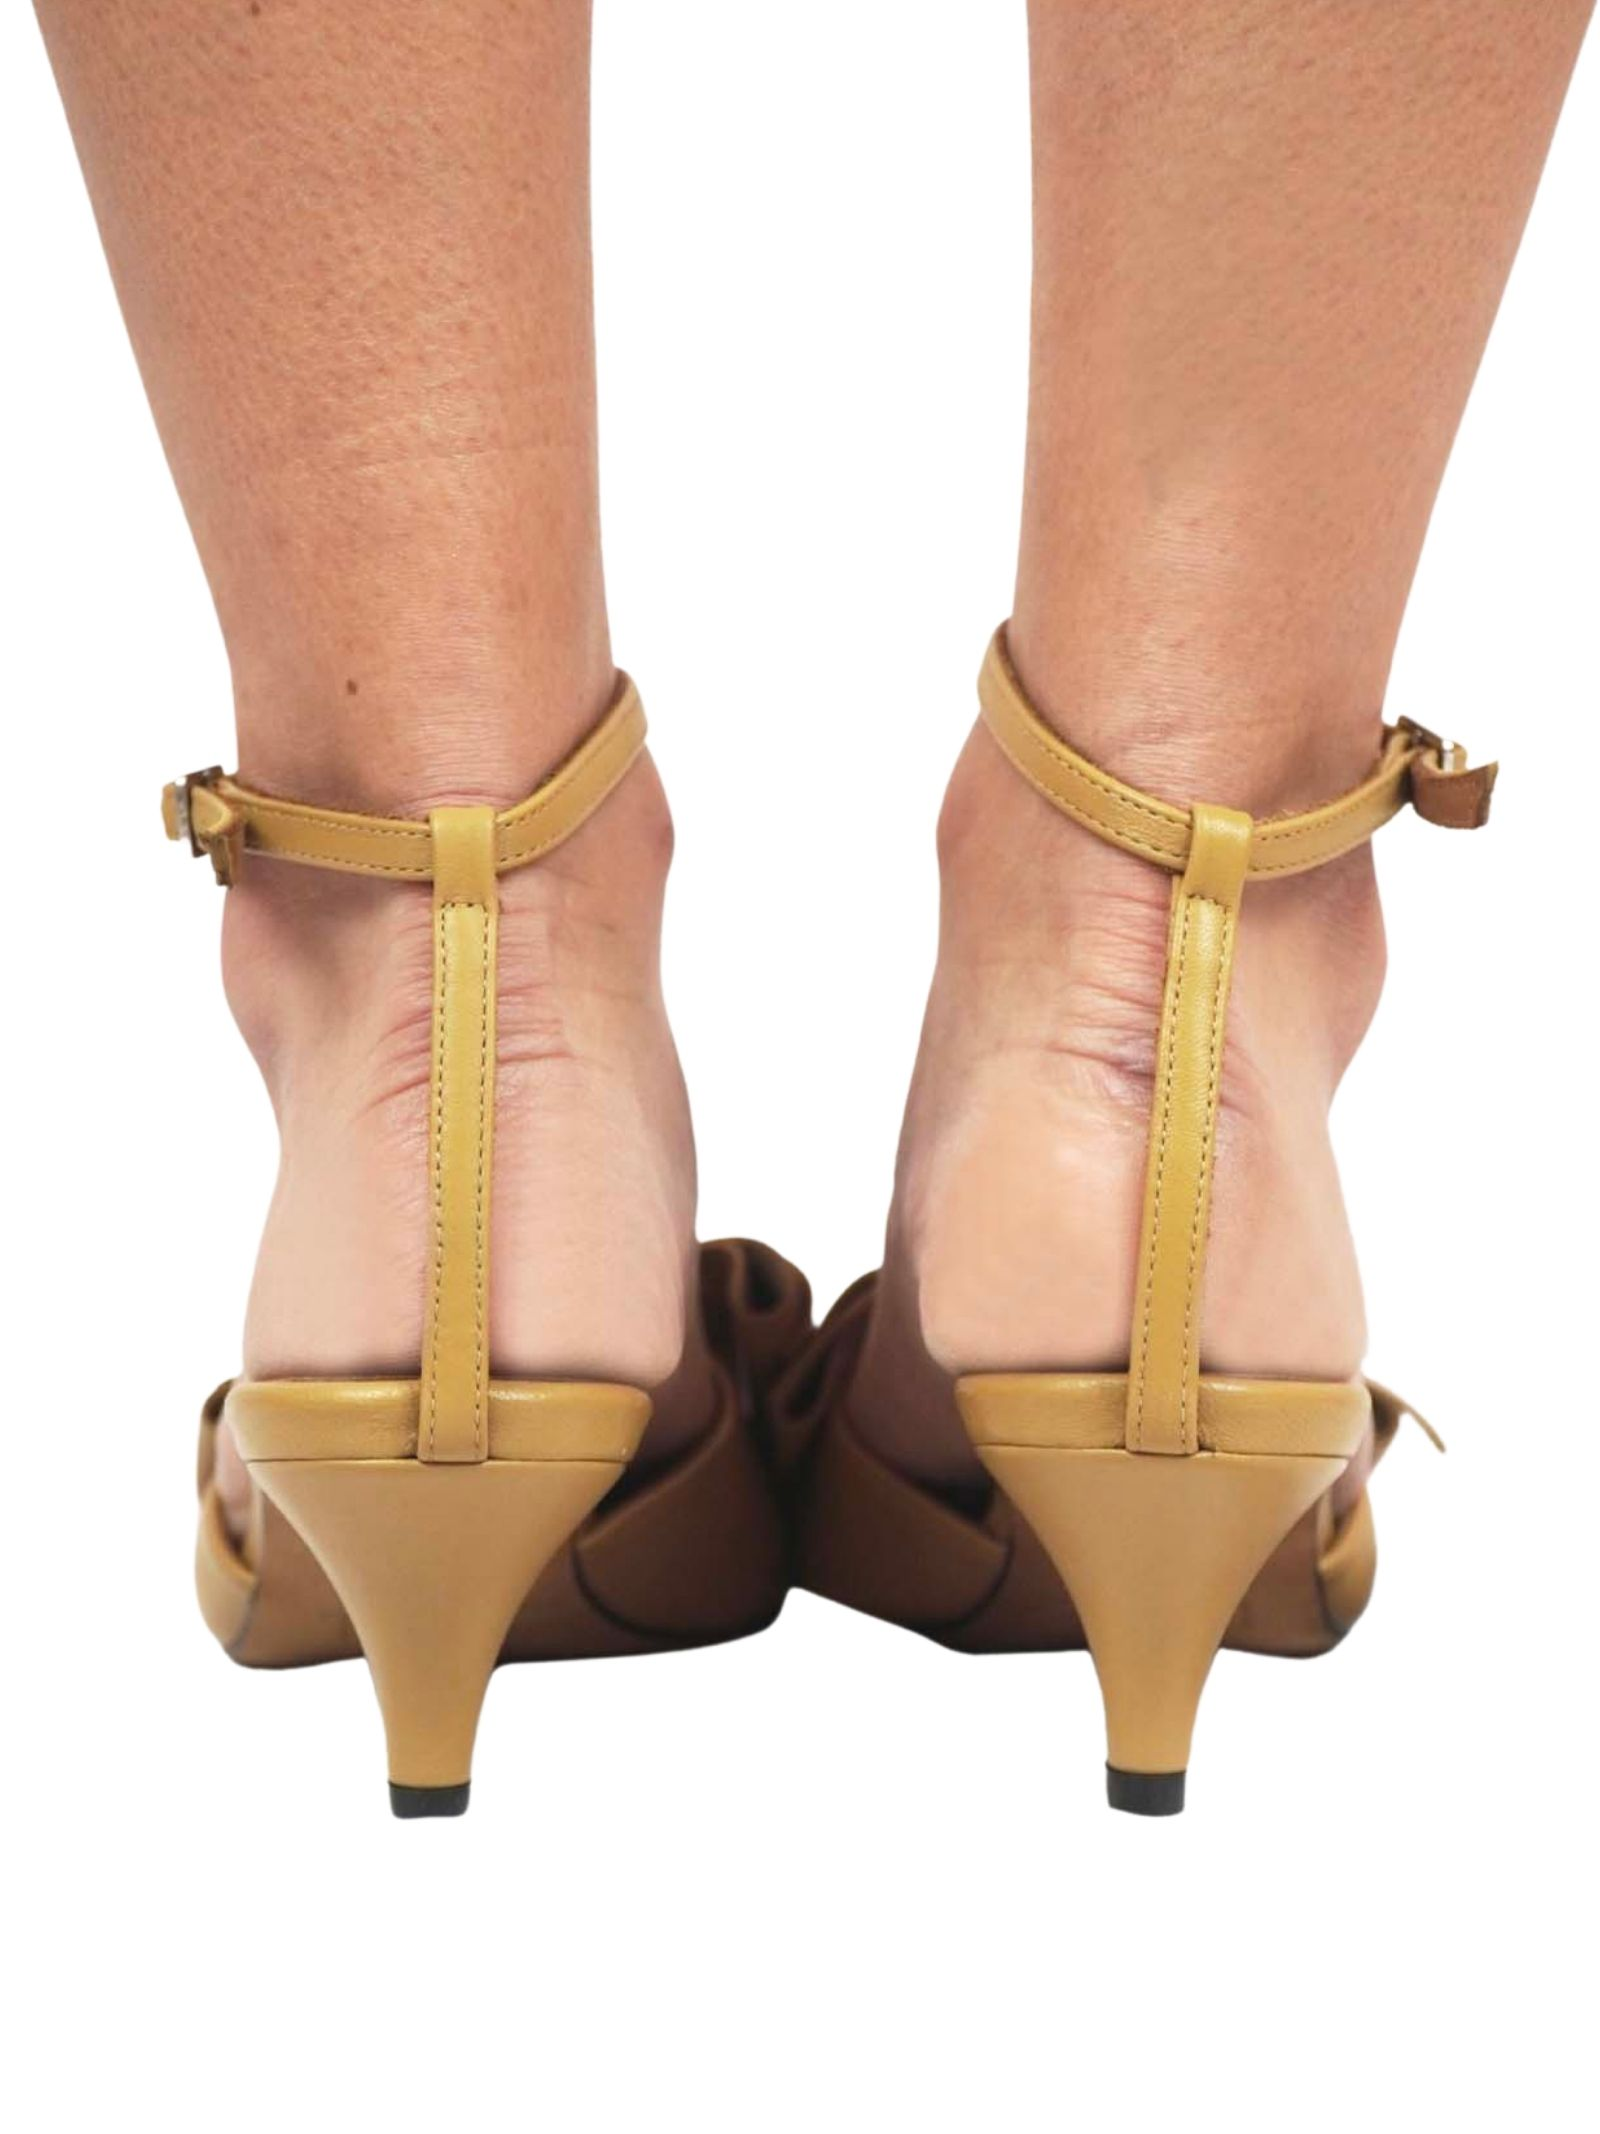 Women's Shoes Beige Leather Sandals with Matching Leather Bow and Ankle Strap Toral   Sandals   TL12662015